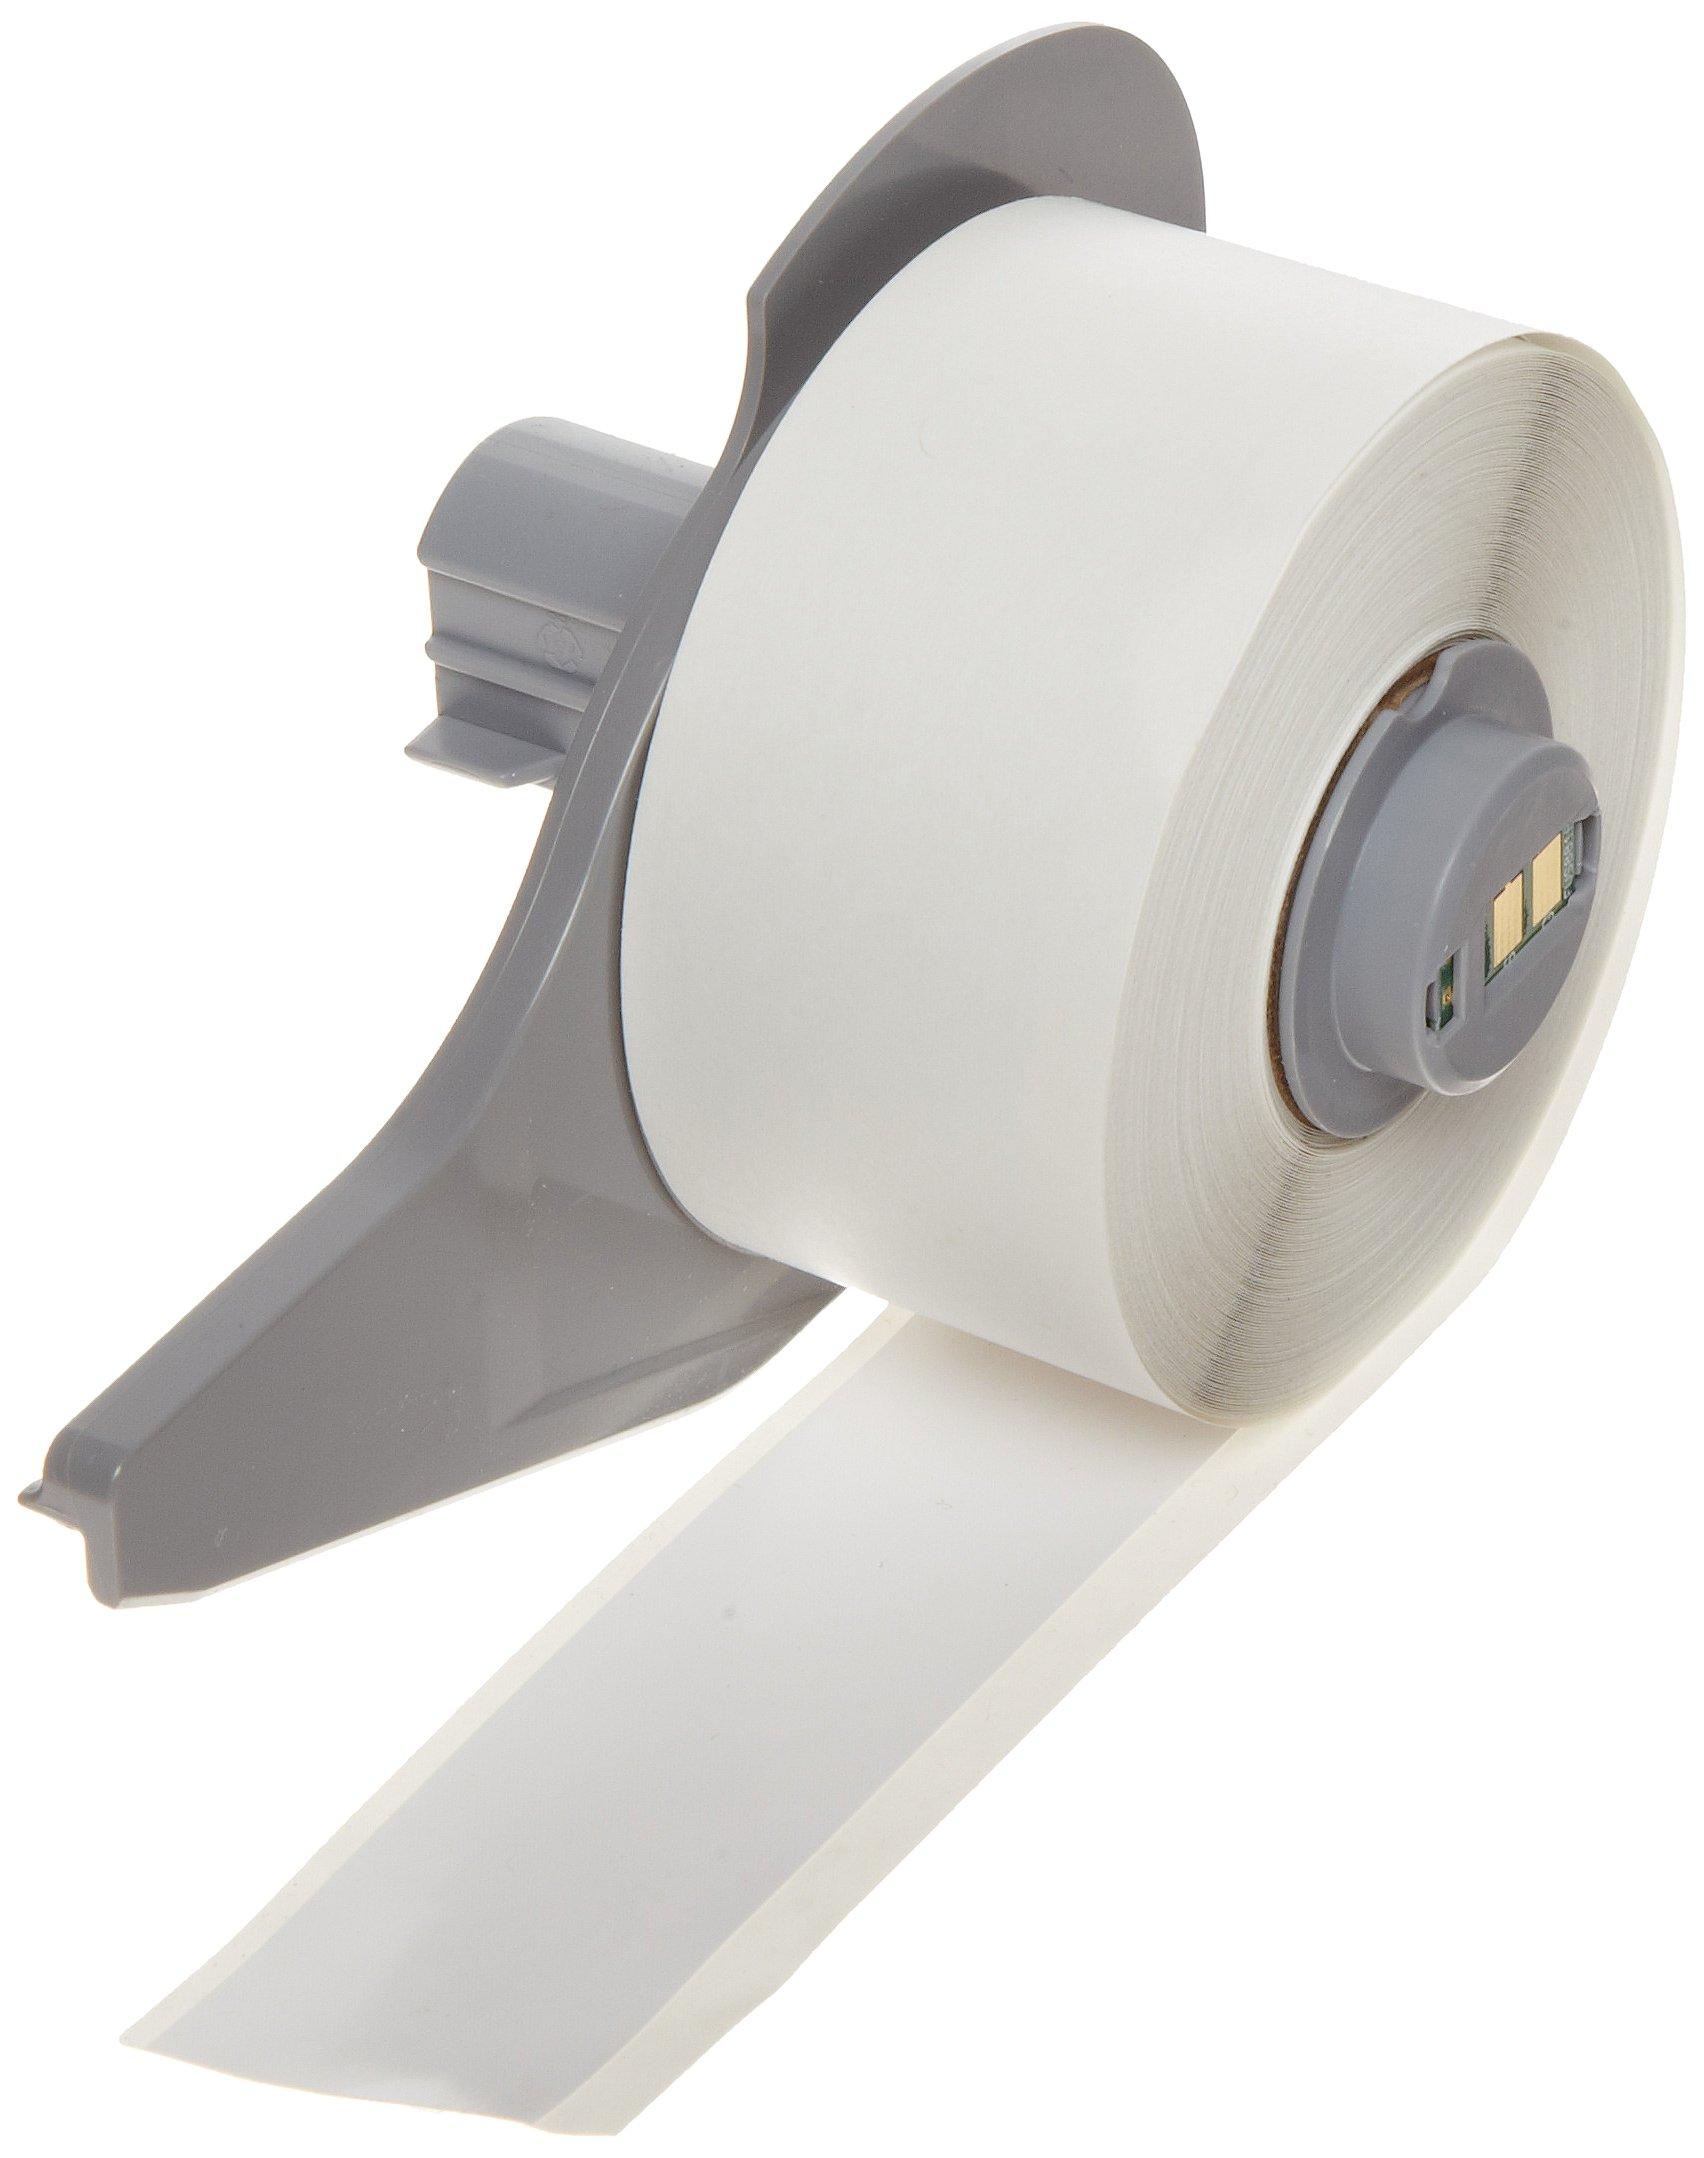 Brady High Adhesion Vinyl Label Tape (M71C-1000-595-WT) - White Vinyl Film - Compatible with BMP71 Label Printer - 50' Length, 1'' Width